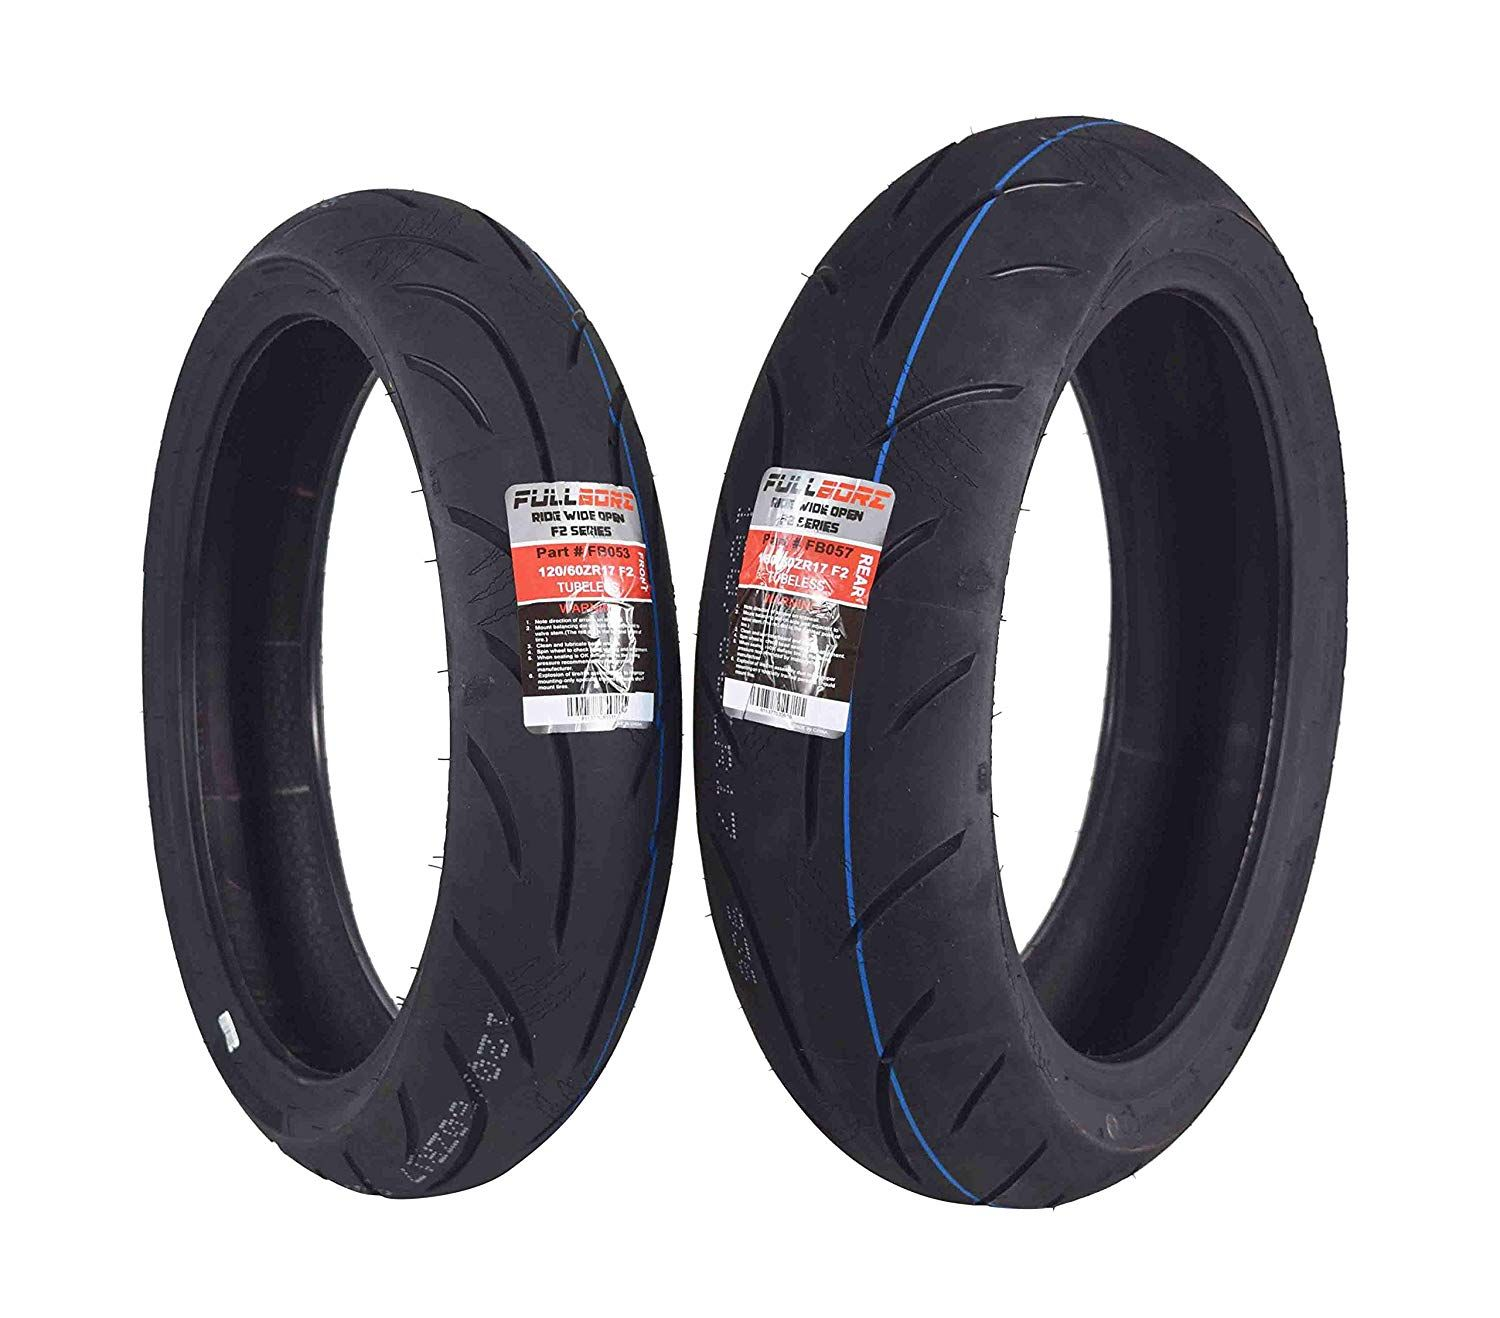 Full Bore F2 Series 120 60zr17 Front And 160 60zr17 Rear Radial Motorcycle Sport Bike Tire Combo Set 120 60 17 1 Bike Tire Sport Bikes Sports Bikes Motorcycles